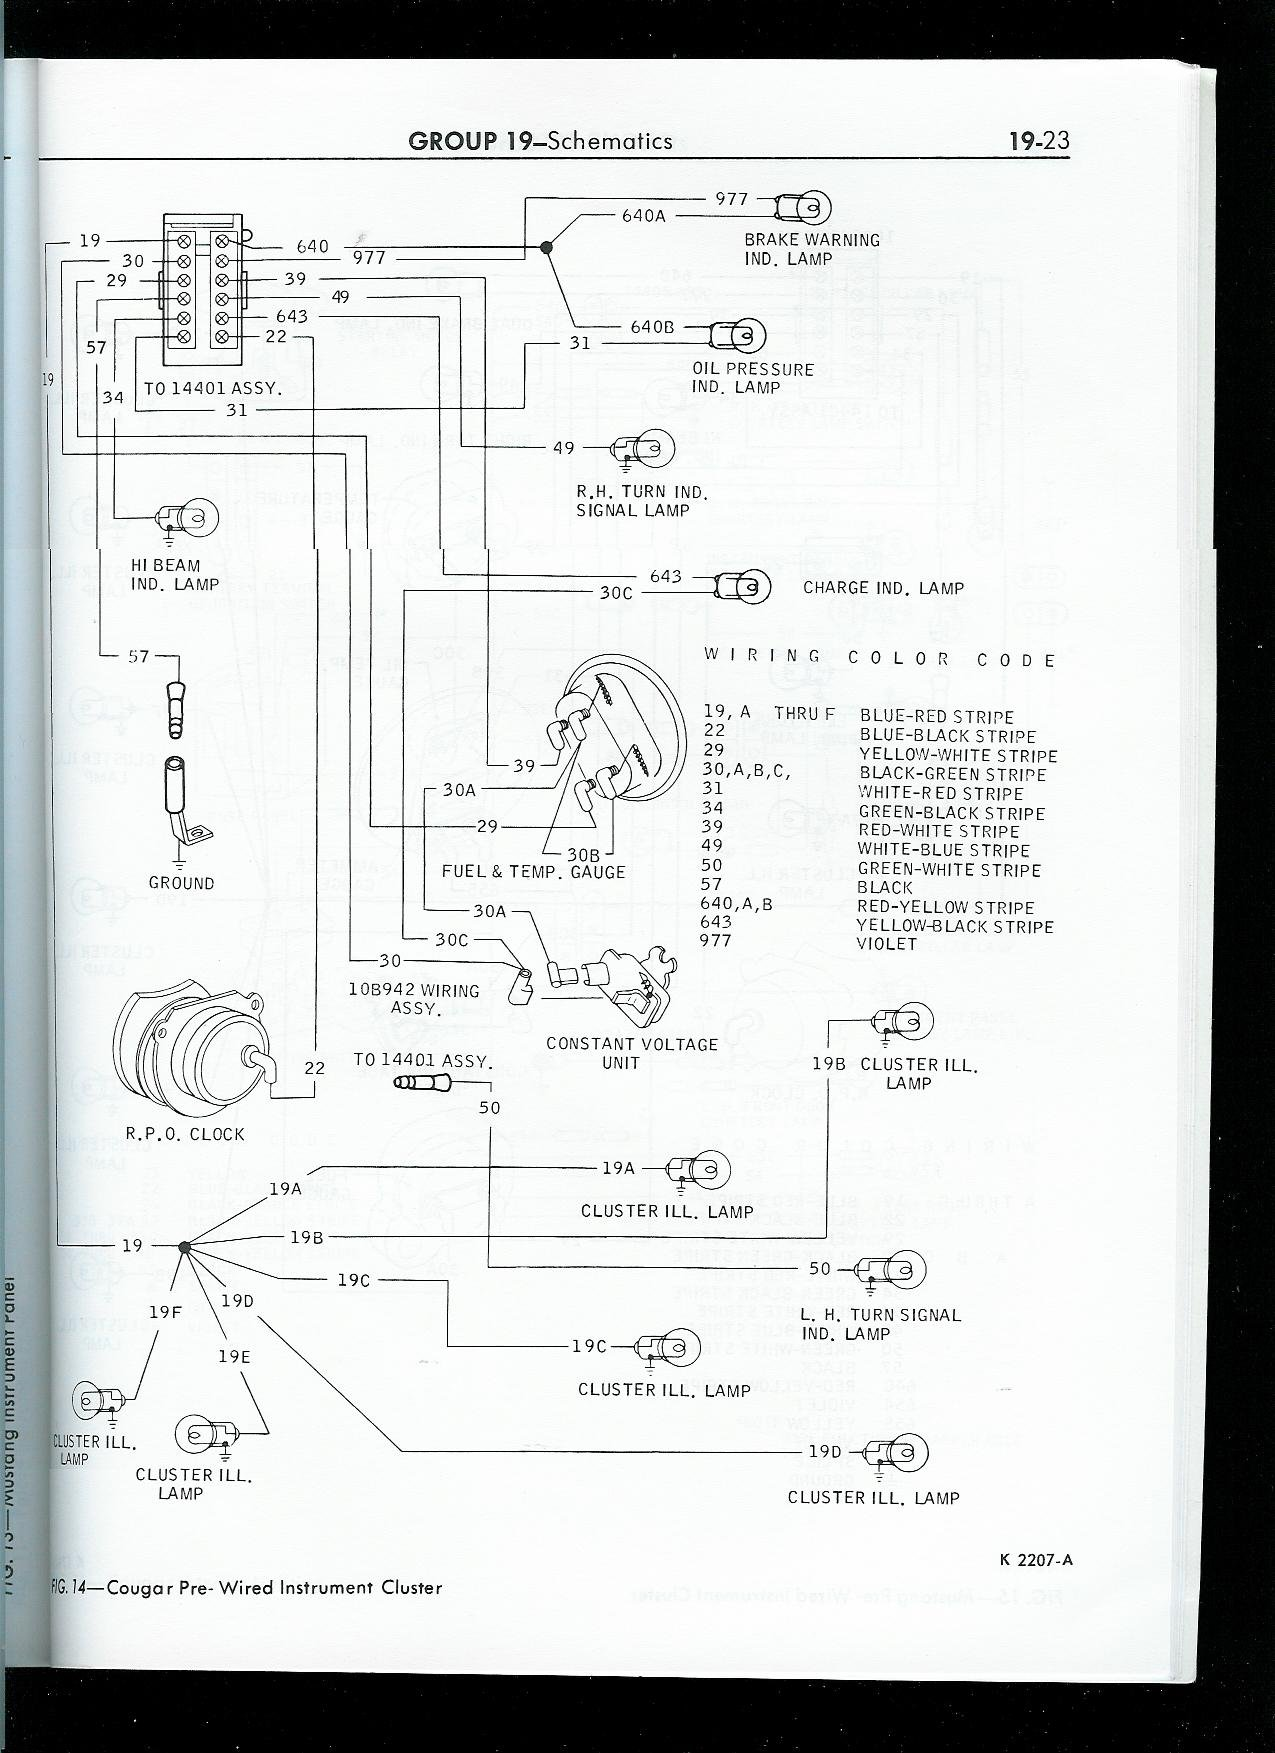 67 Mustang Dash Wiring Diagram Data 1967 Ford Ltd Needed Vintage Forums Tail Light